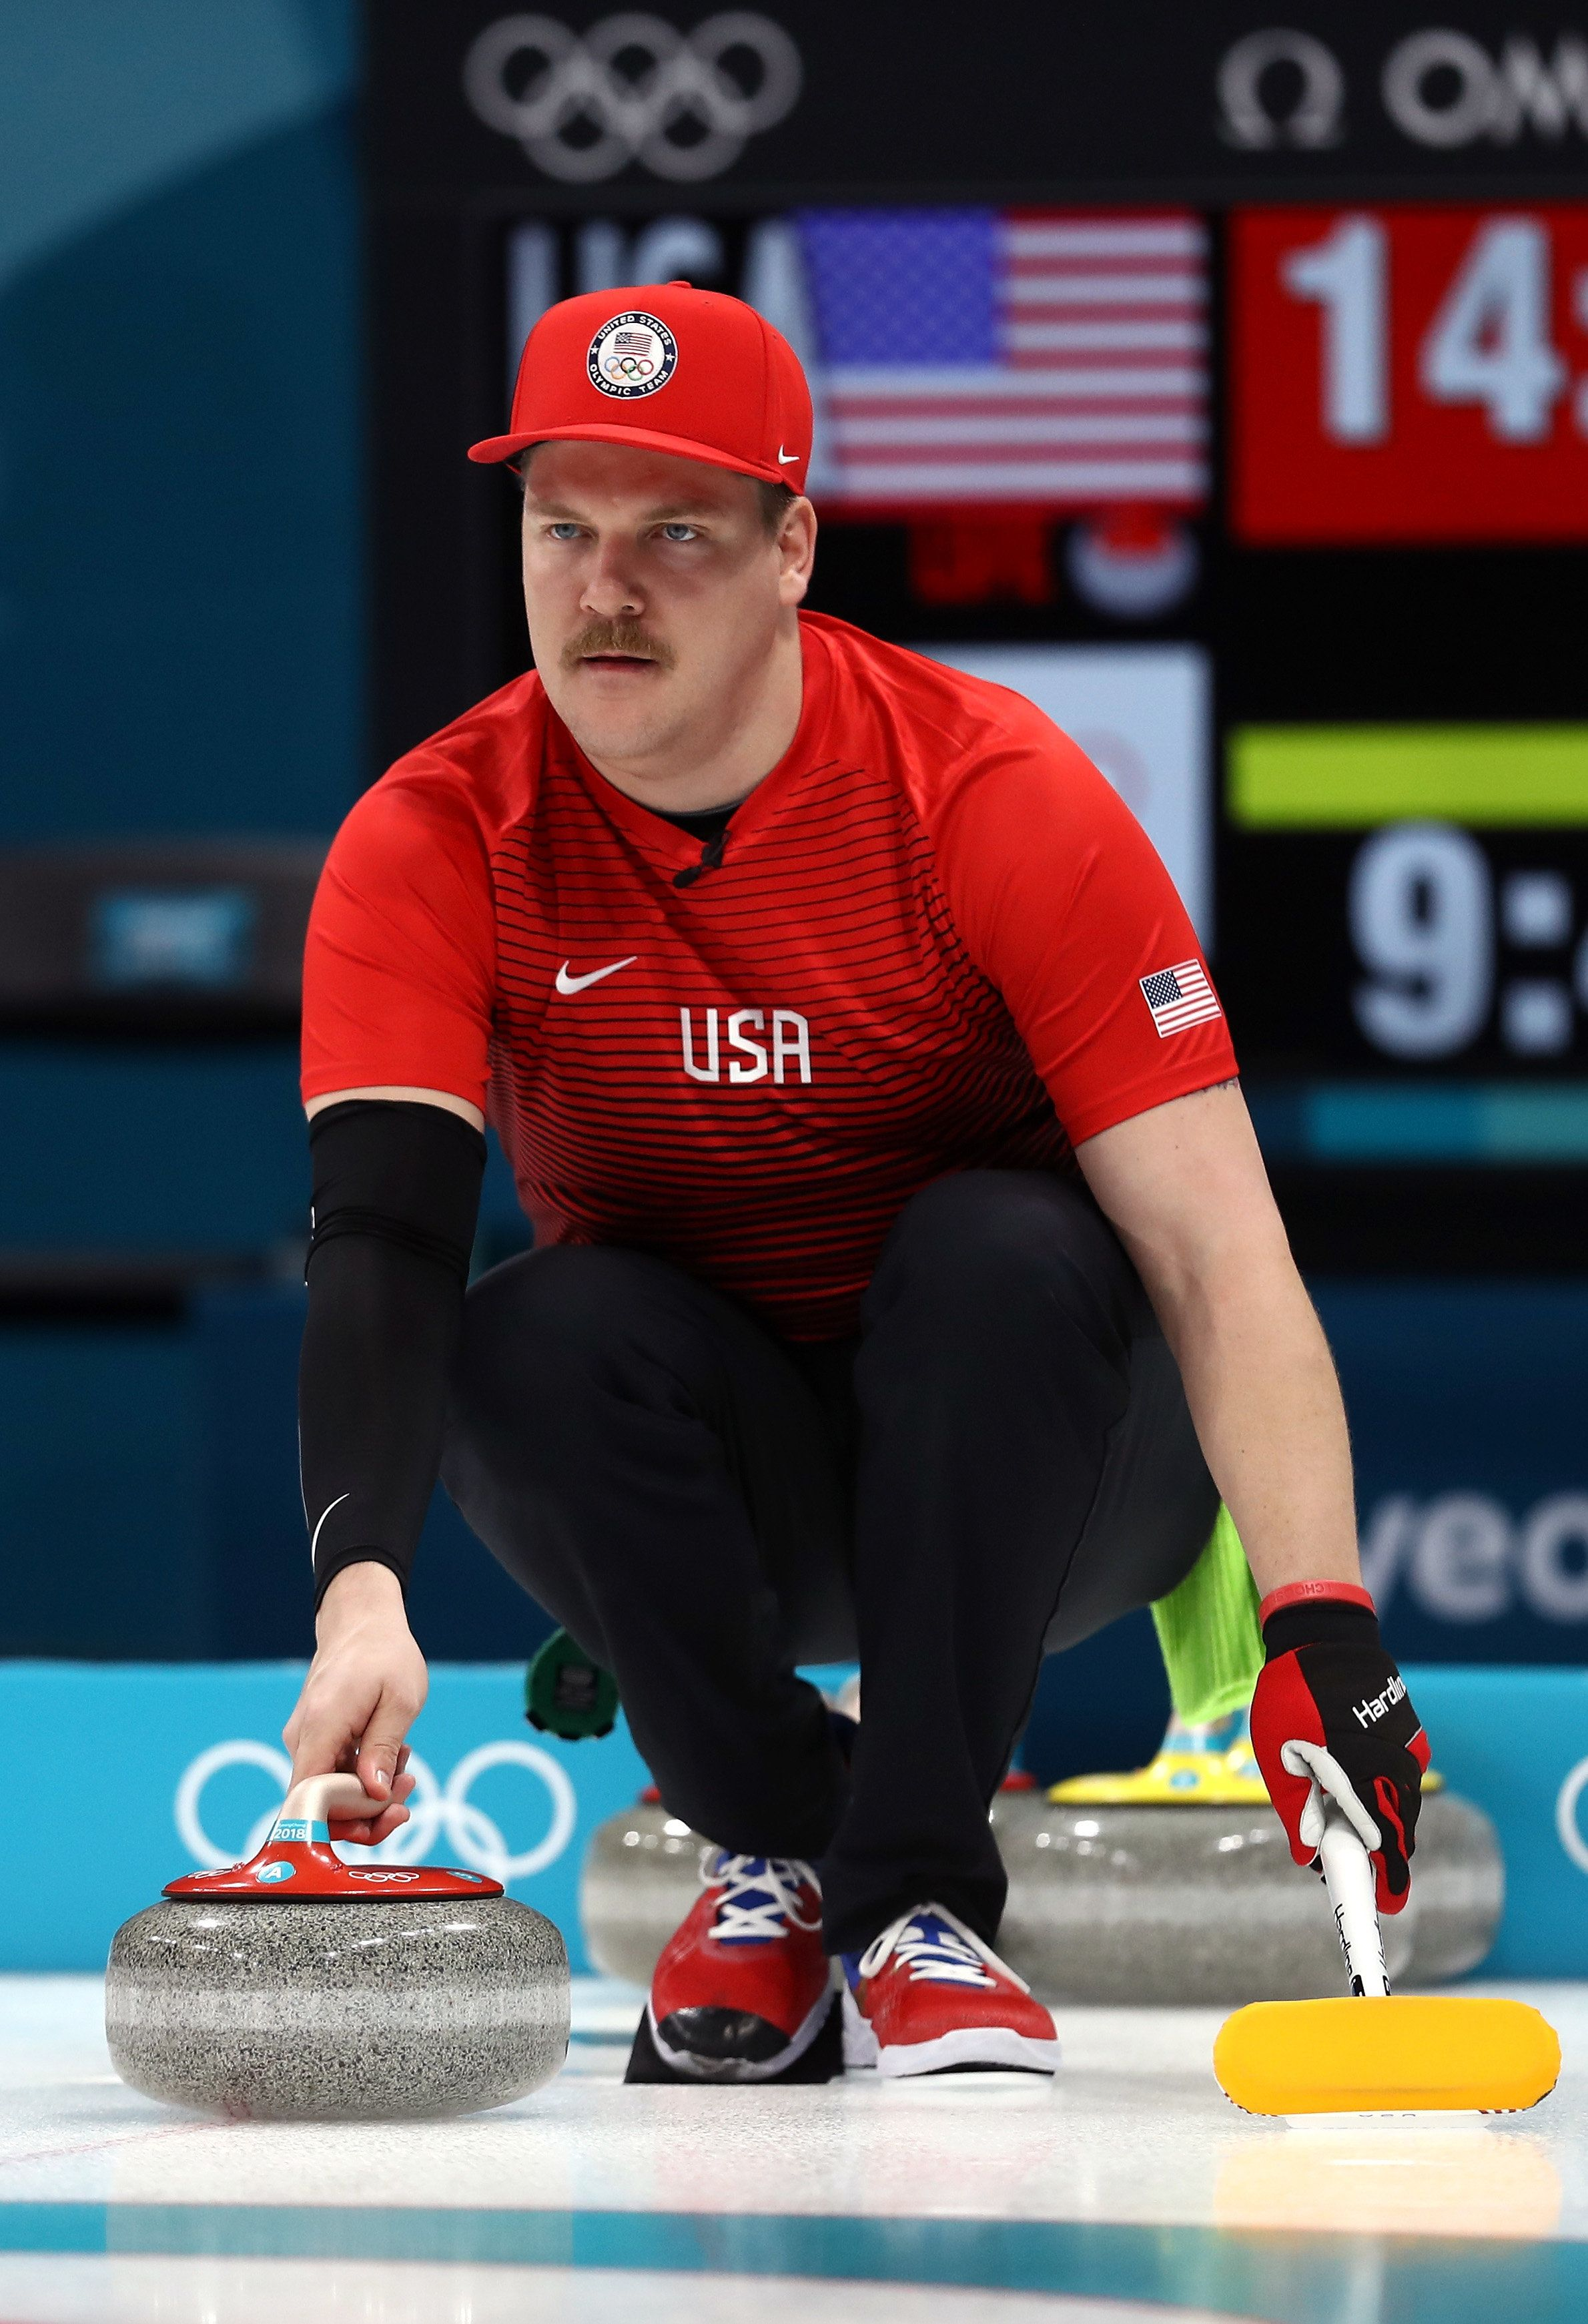 PYEONGCHANG-GUN, SOUTH KOREA - FEBRUARY 08:  Matt Hamilton of the United States delivers a stone against Olympic Athletes from Russia in the Curling Mixed Doubles Round Robin Session 1 during the PyeongChang 2018 Winter Olympic Games at Gangneung Curling Centre on February 8, 2018 in Pyeongchang-gun, South Korea.  (Photo by Ronald Martinez/Getty Images)